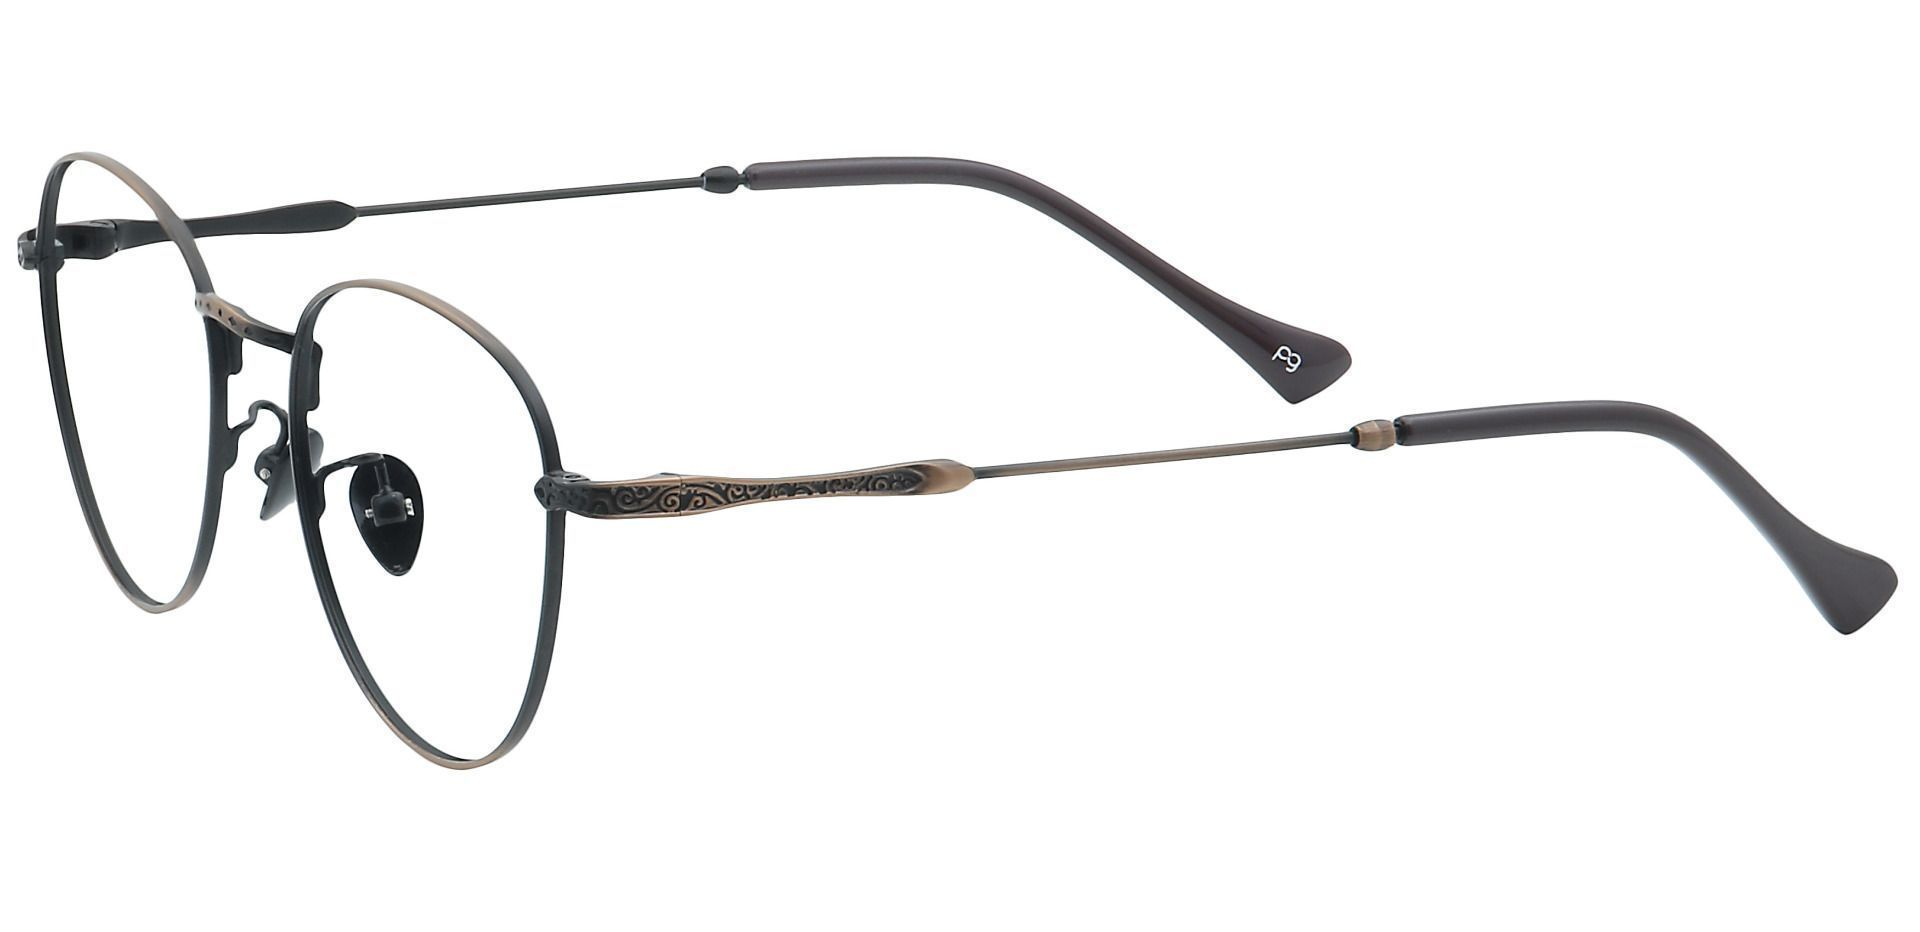 Shawn Oval Prescription Glasses - Brown